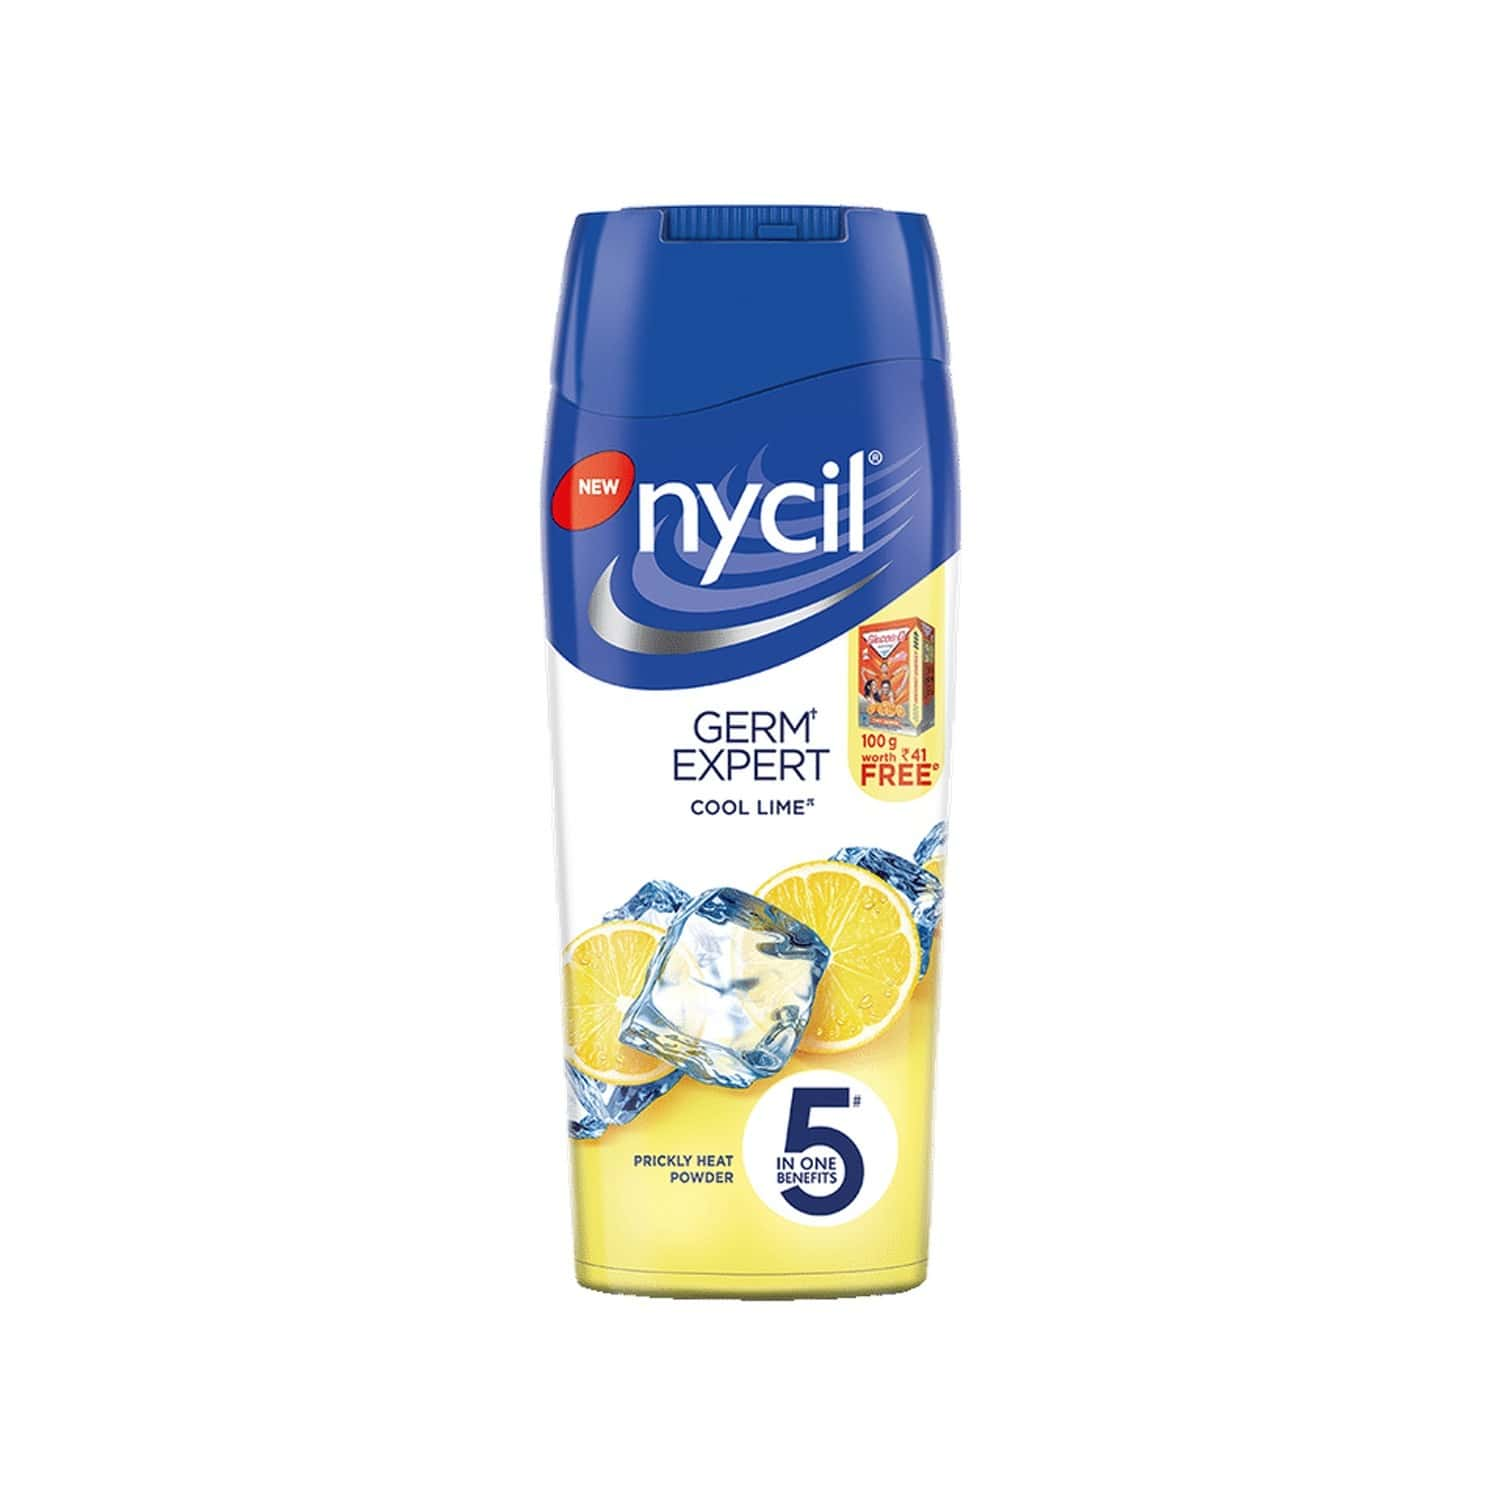 Nycil Cool Lime Prickly Heat Powder - 150gm (free Glucon-d Orange 100gm Worth Rs 41)